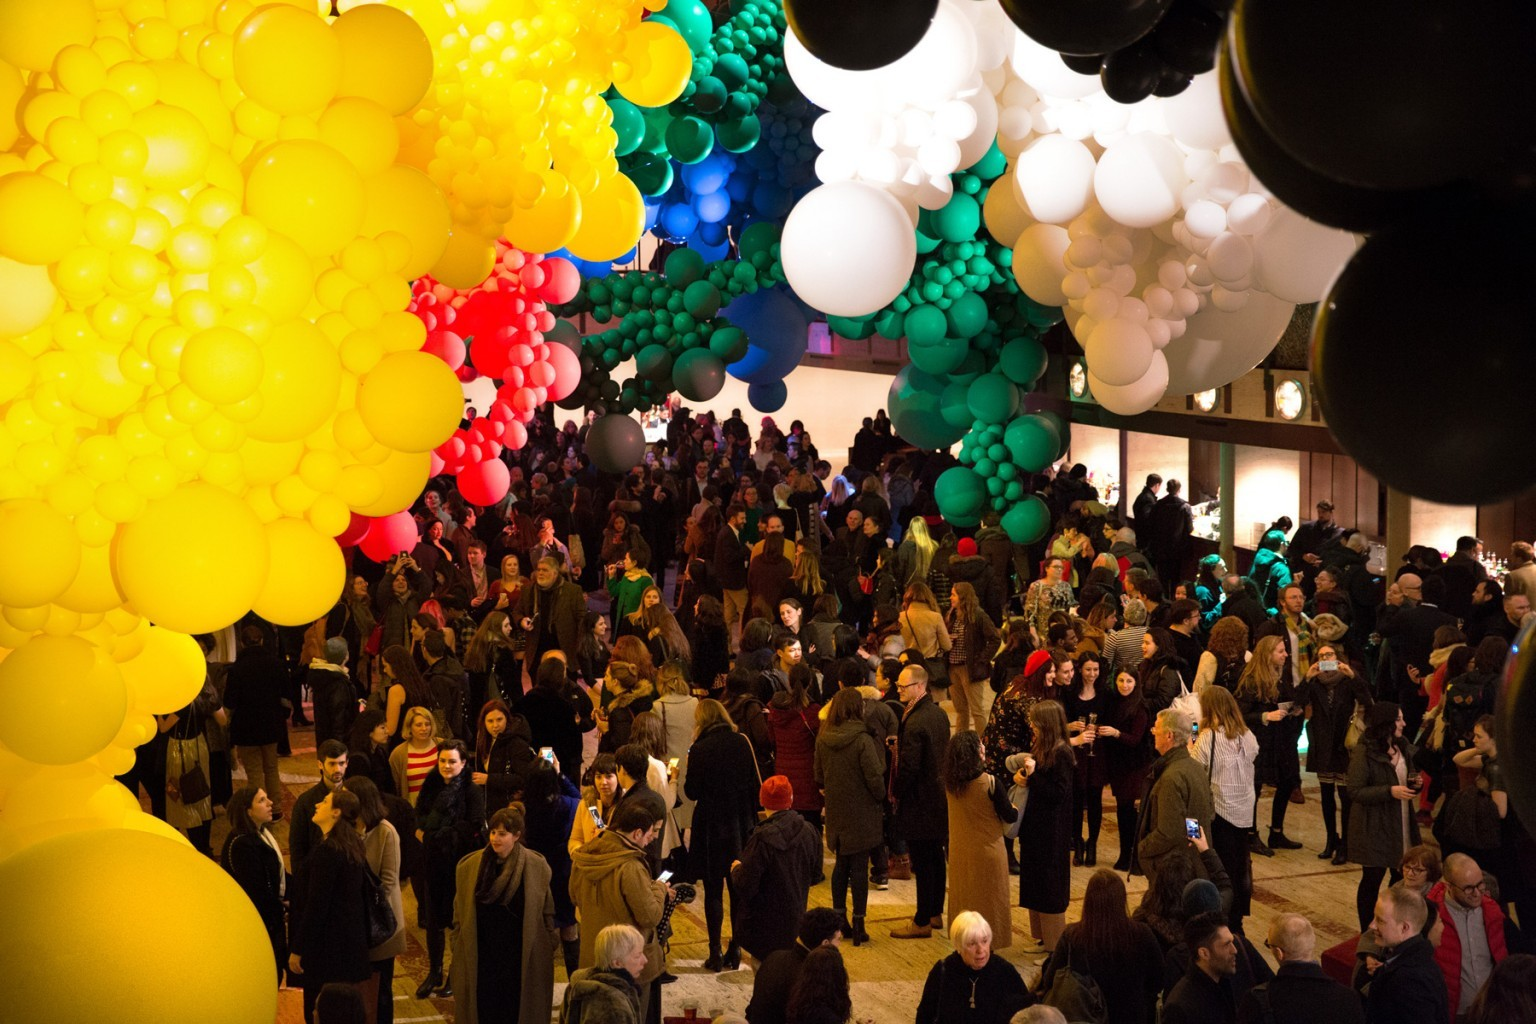 Geronimo Fills Lincoln Center with a Massive Balloon Installation for the New York City Ballet